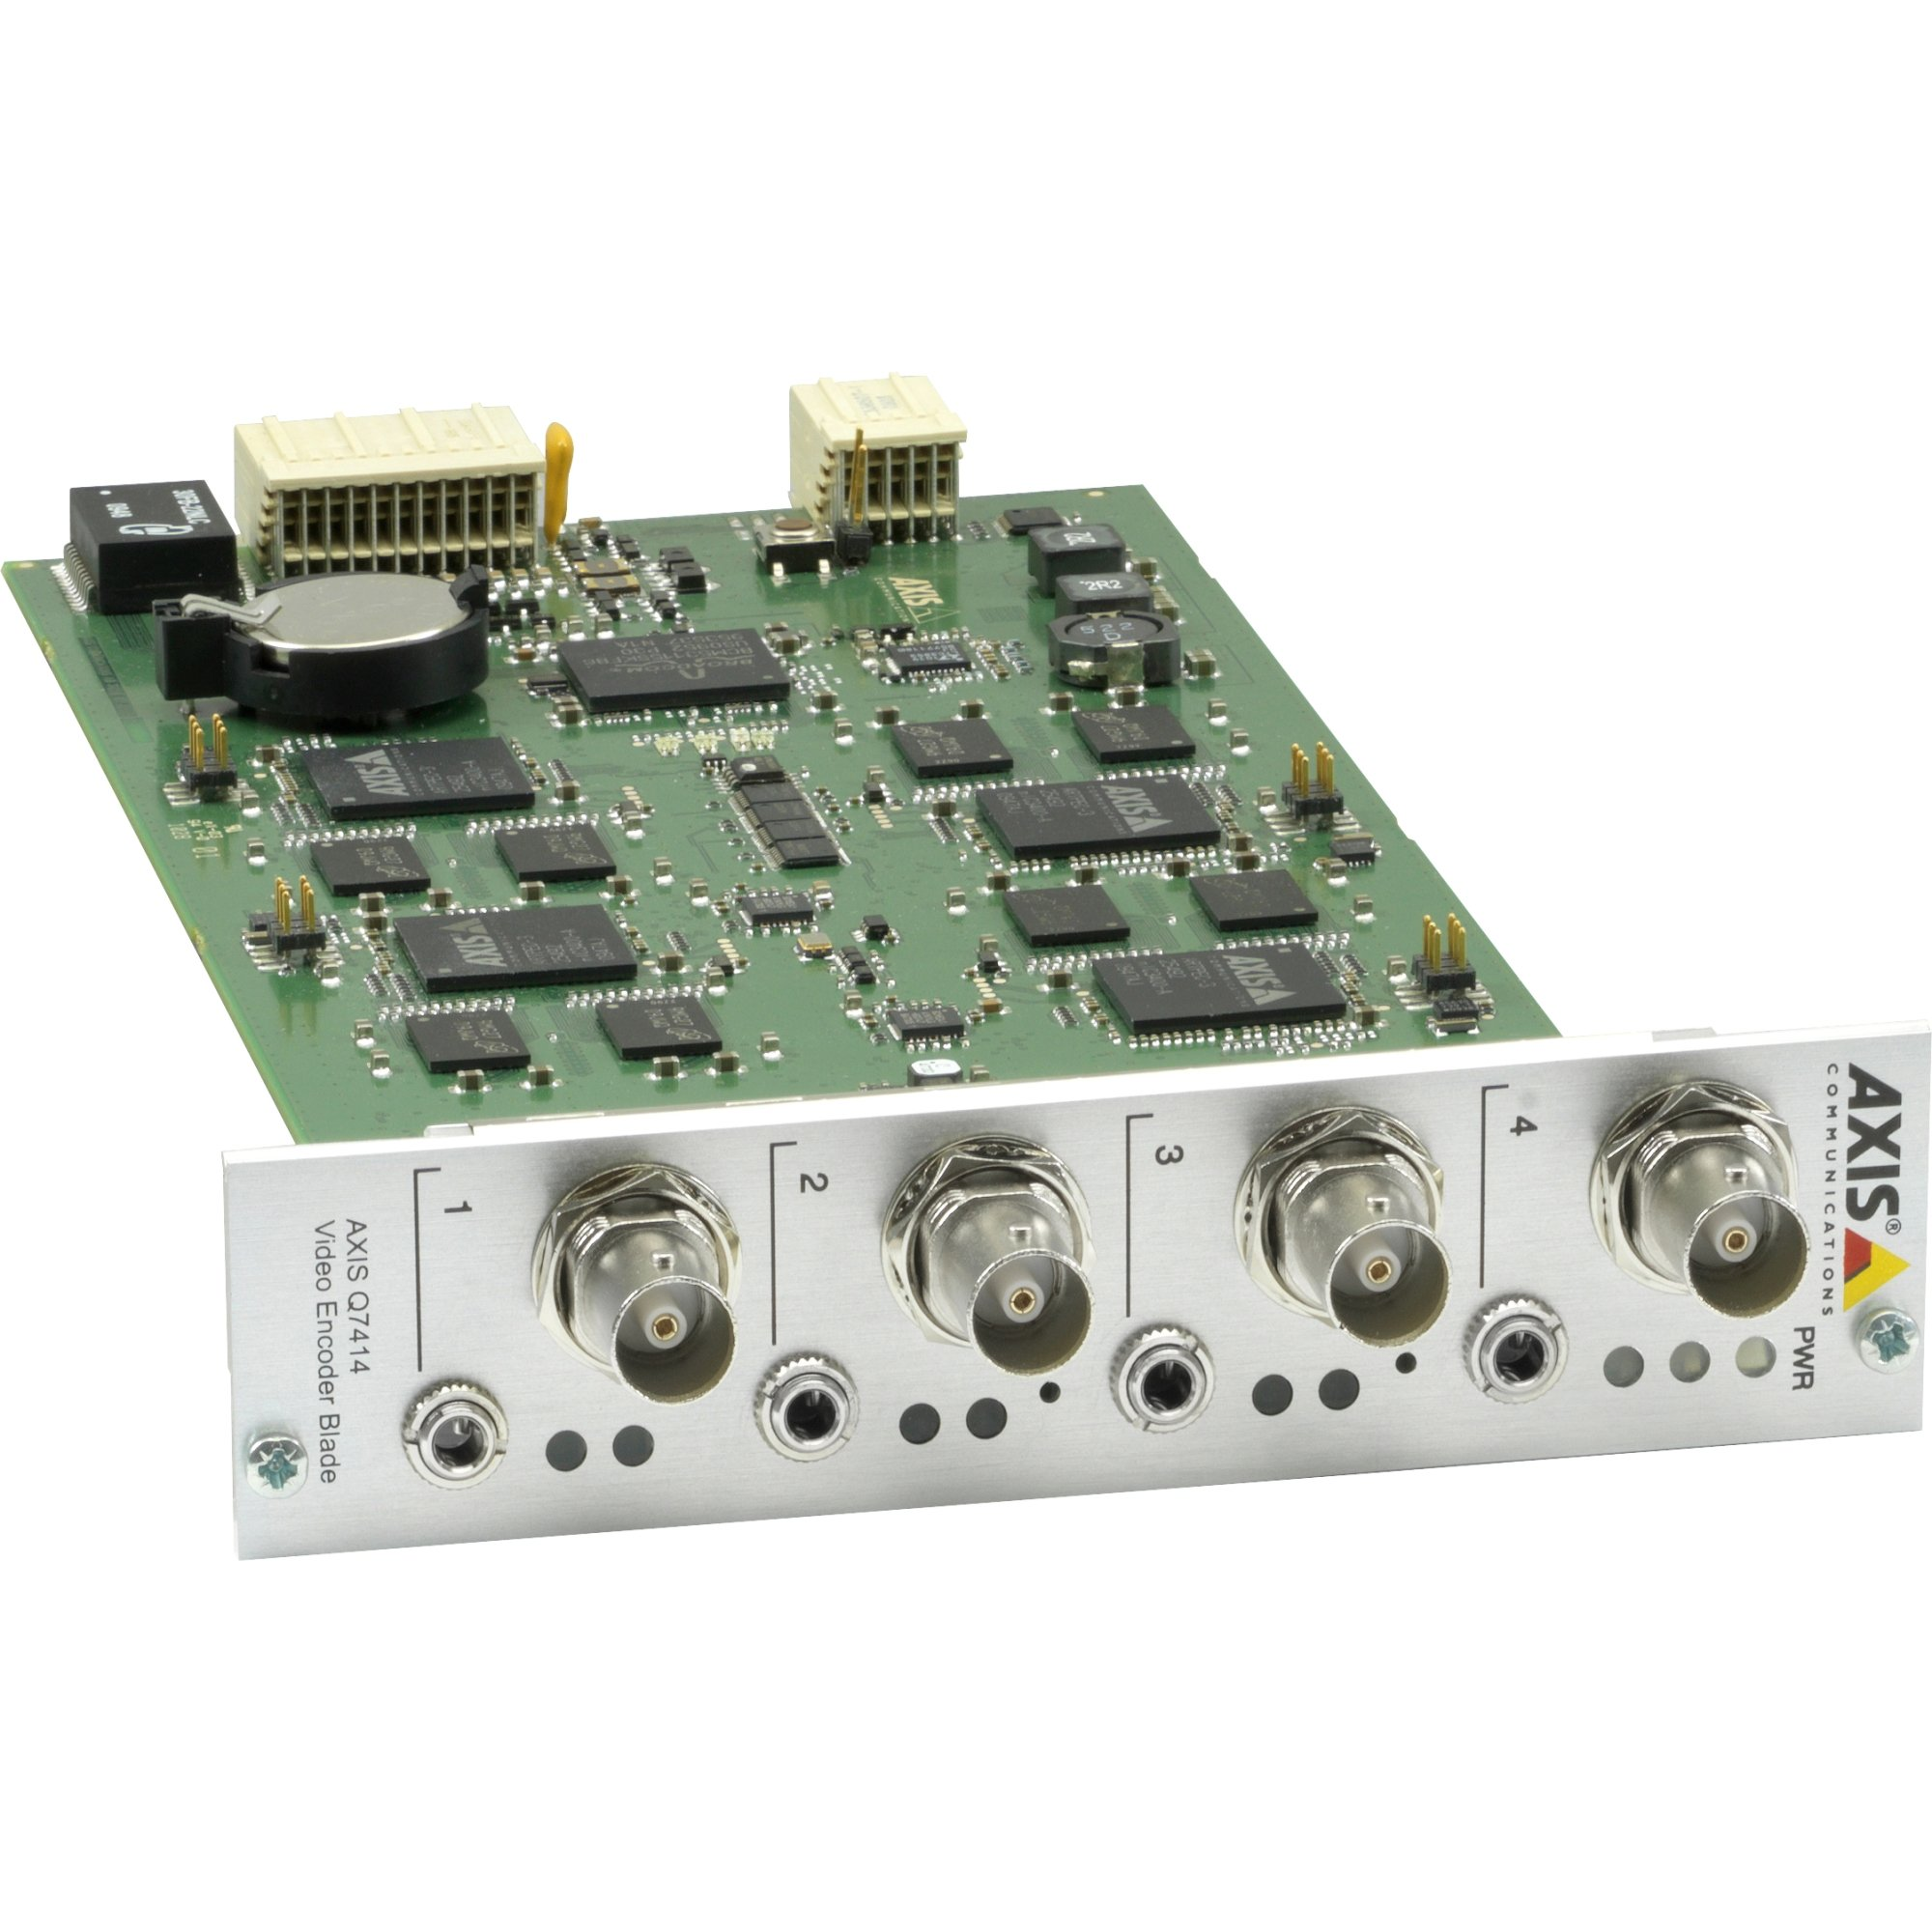 Axis Communications Q7414 4-Channel Video Encoder Blade for Q7900 Rack, H.264/Motion JPEG Streams, 30/25fps Frame Rate by AXIS COMMUNICATION INC.